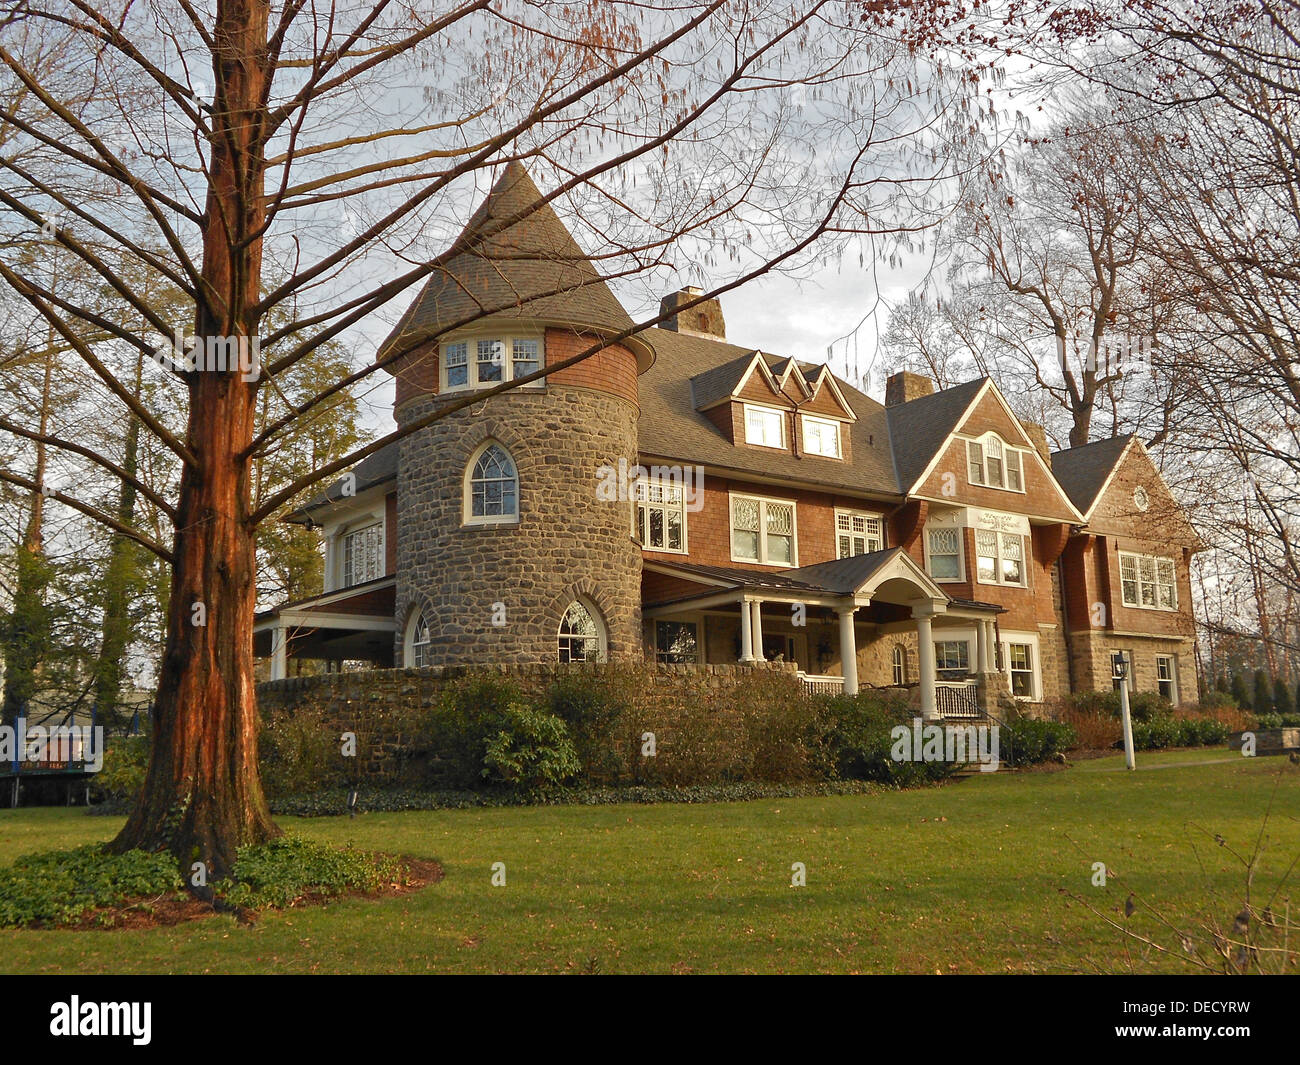 House at 319 Louella Street, Wayne, Pennsylvania in the south Wayne Historic District. Designed by Horace Trumbauer according to the NRHP nomination. There are 10-12 houses on Louella that make it the most impressive street in a very impressive historic d - Stock Image